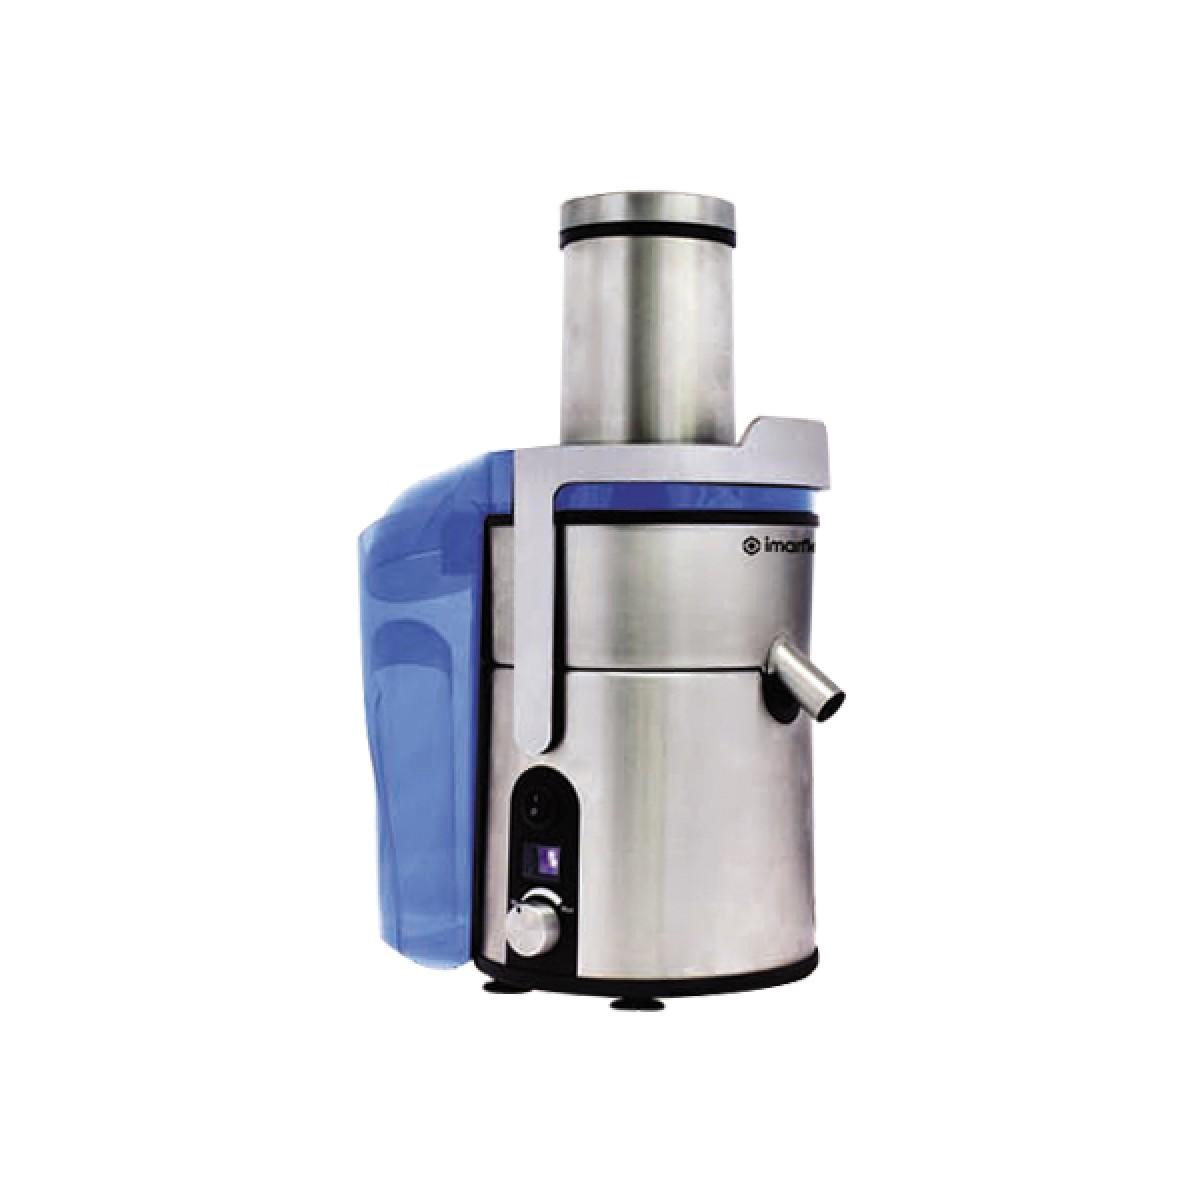 Imarflex IJE-9000S Turbo Juicer - Robinsons Appliances